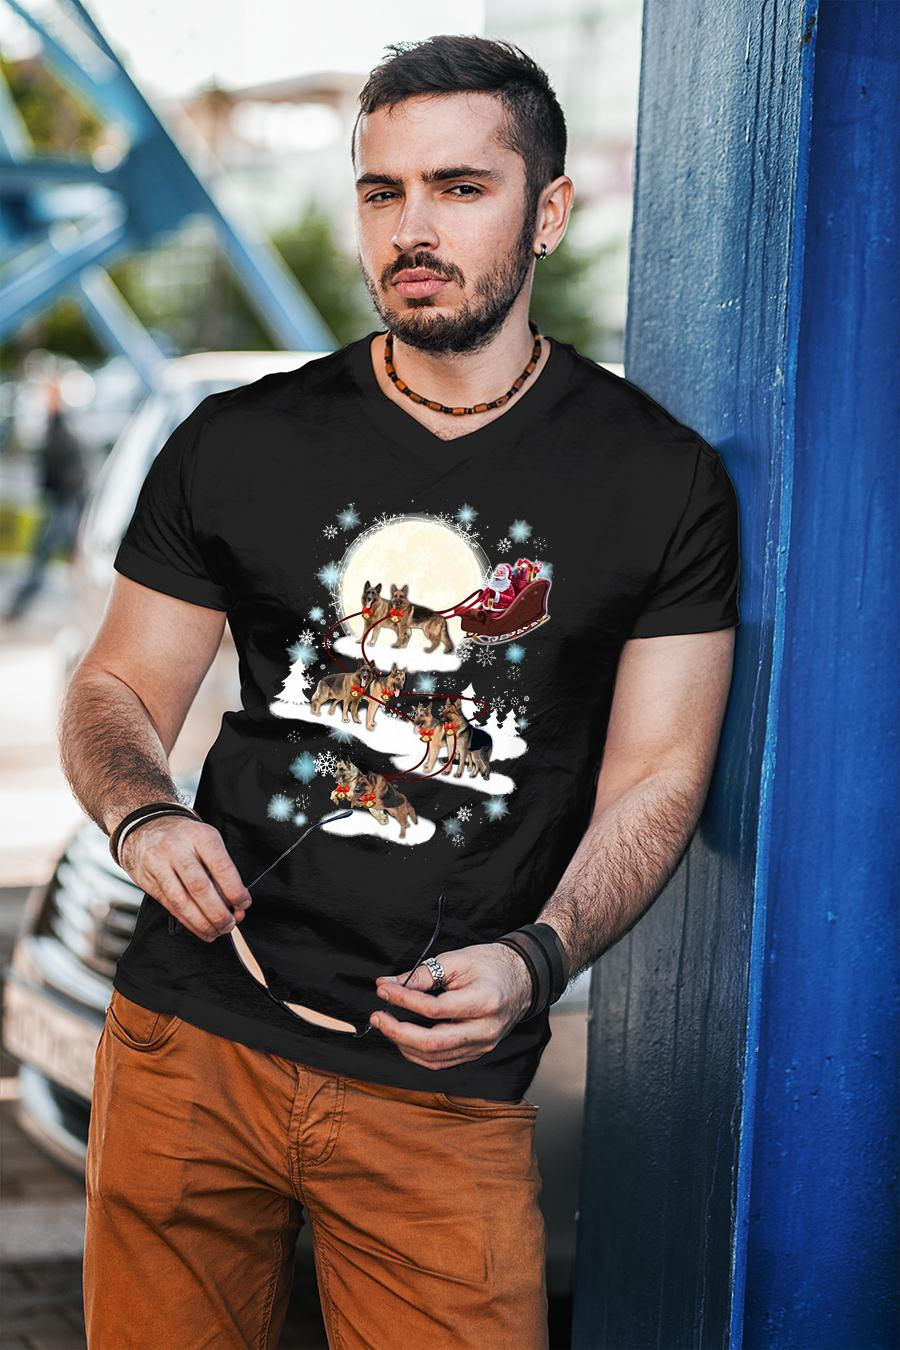 Santa Clause in Christmas pulling the dog shirt unisex